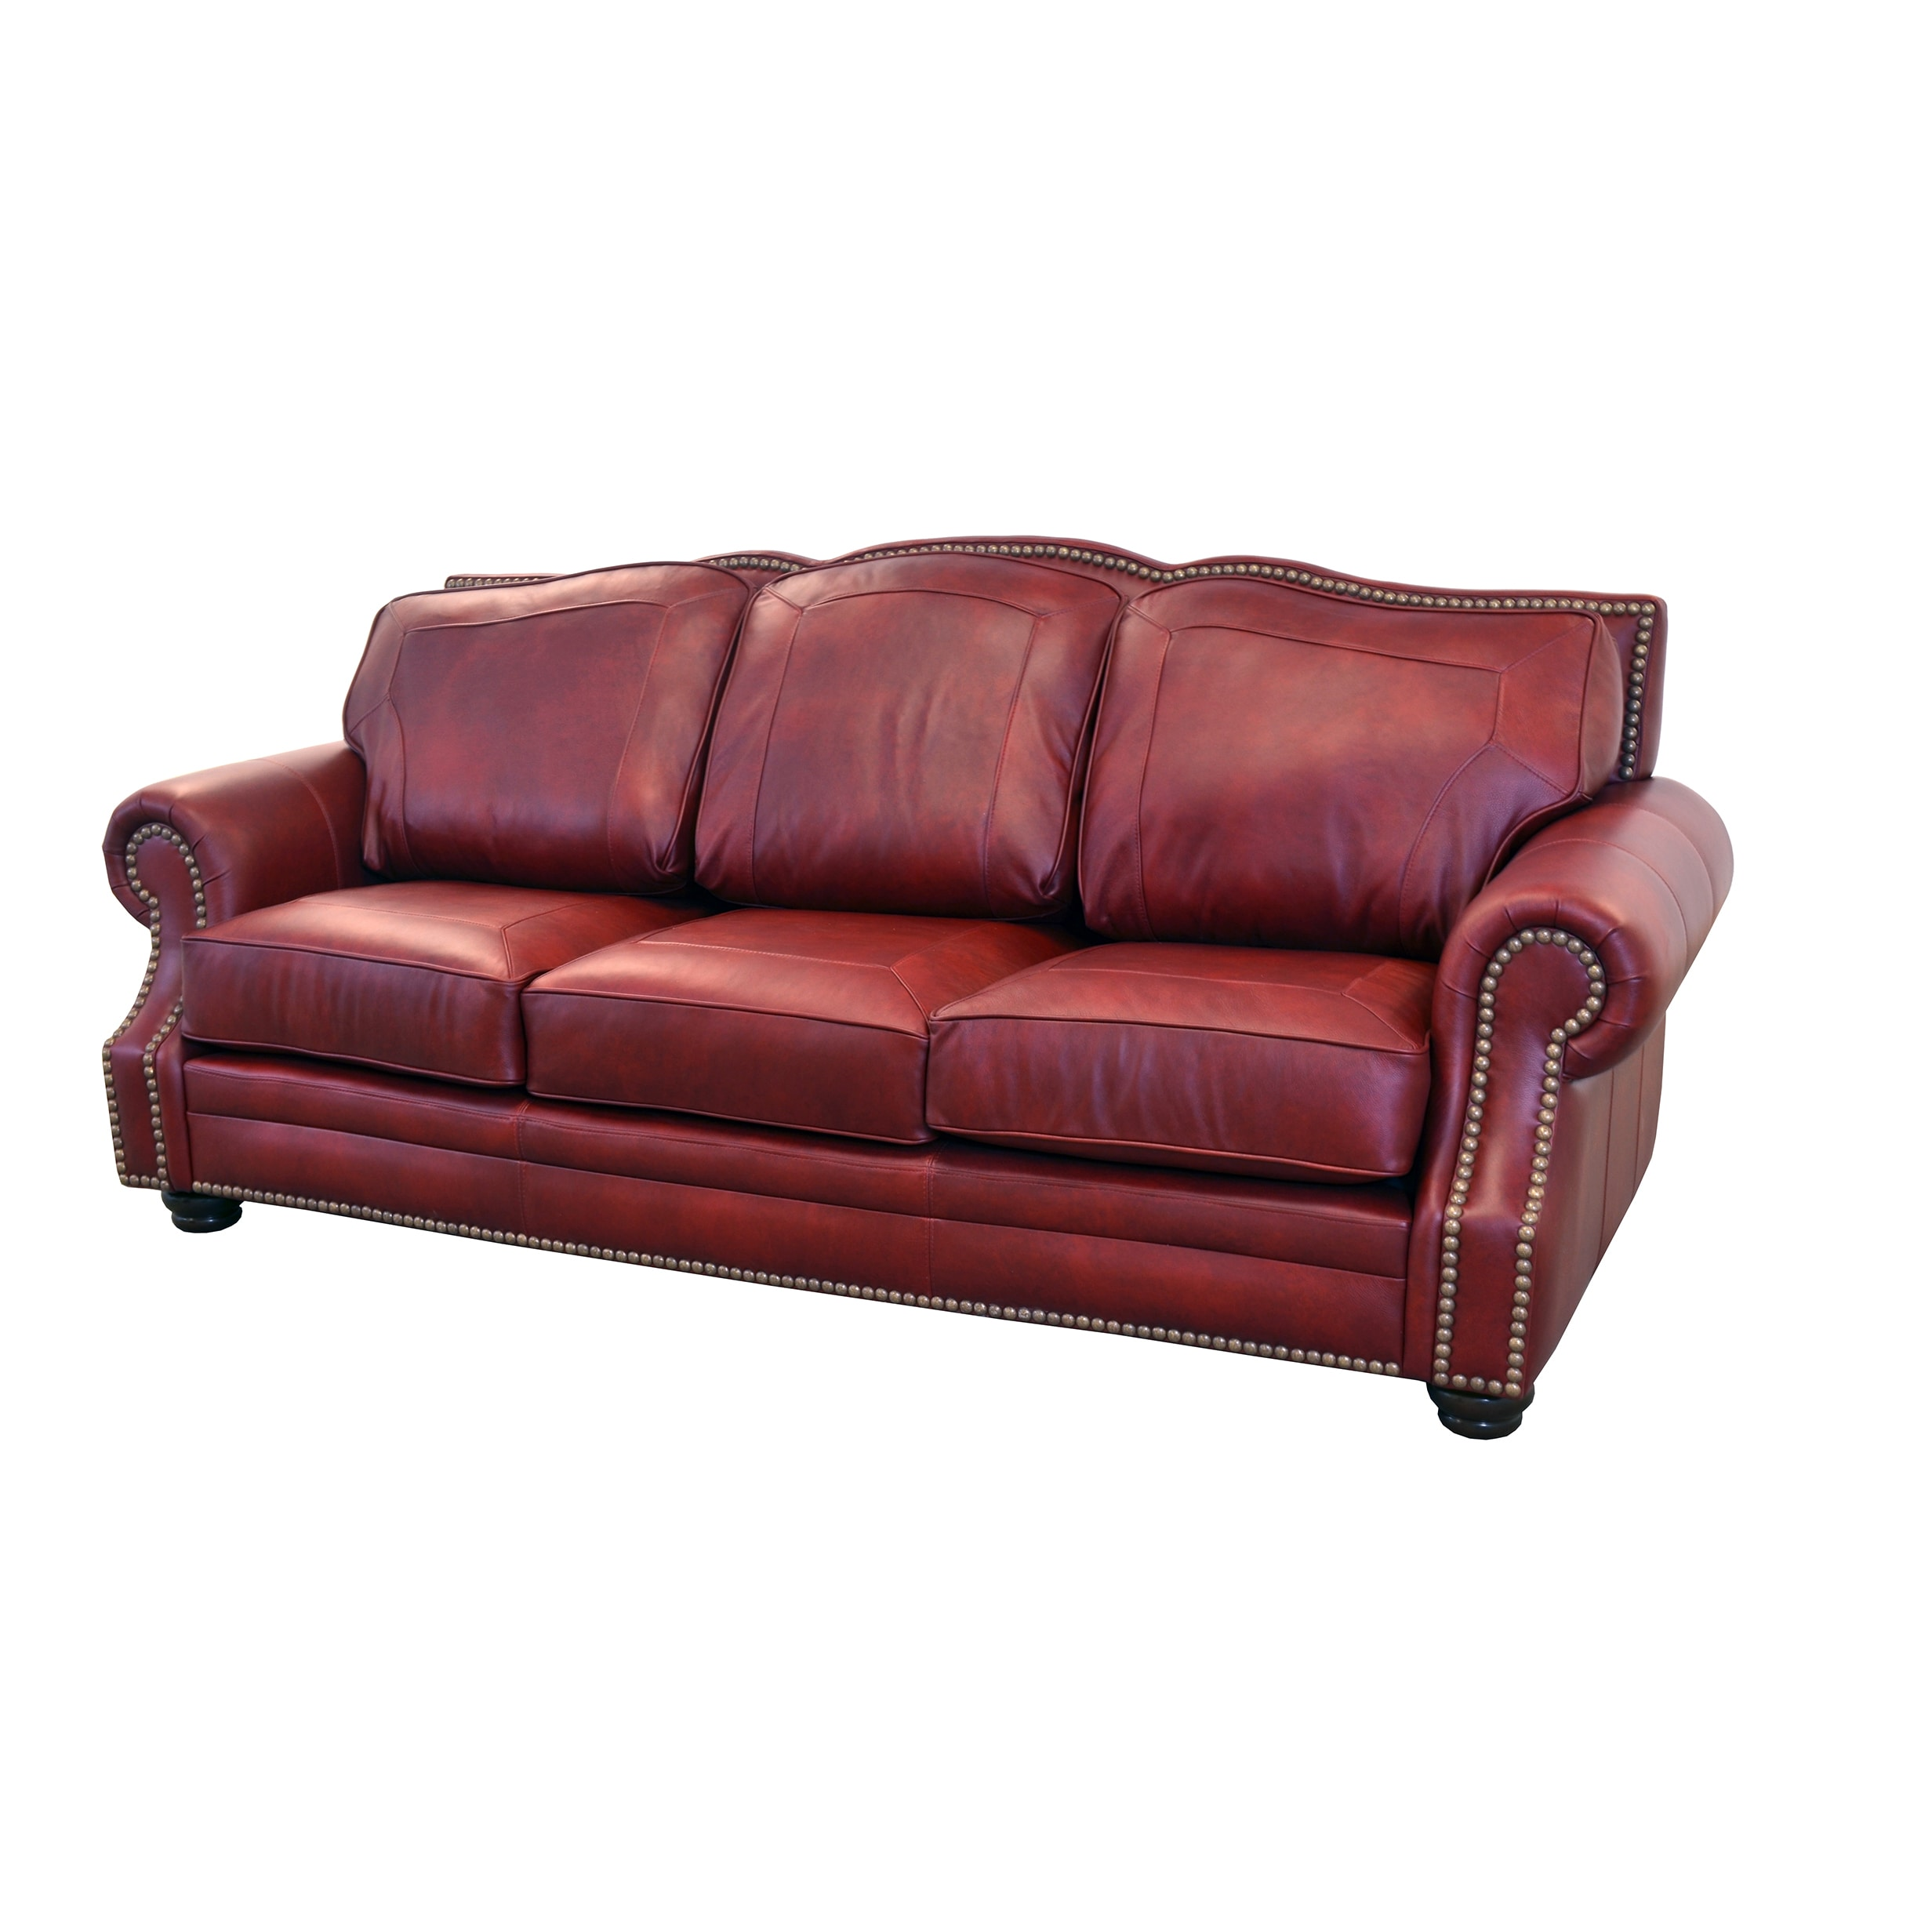 Shop Made to Order Winchester Genuine Top Grain Leather Nailhead ...